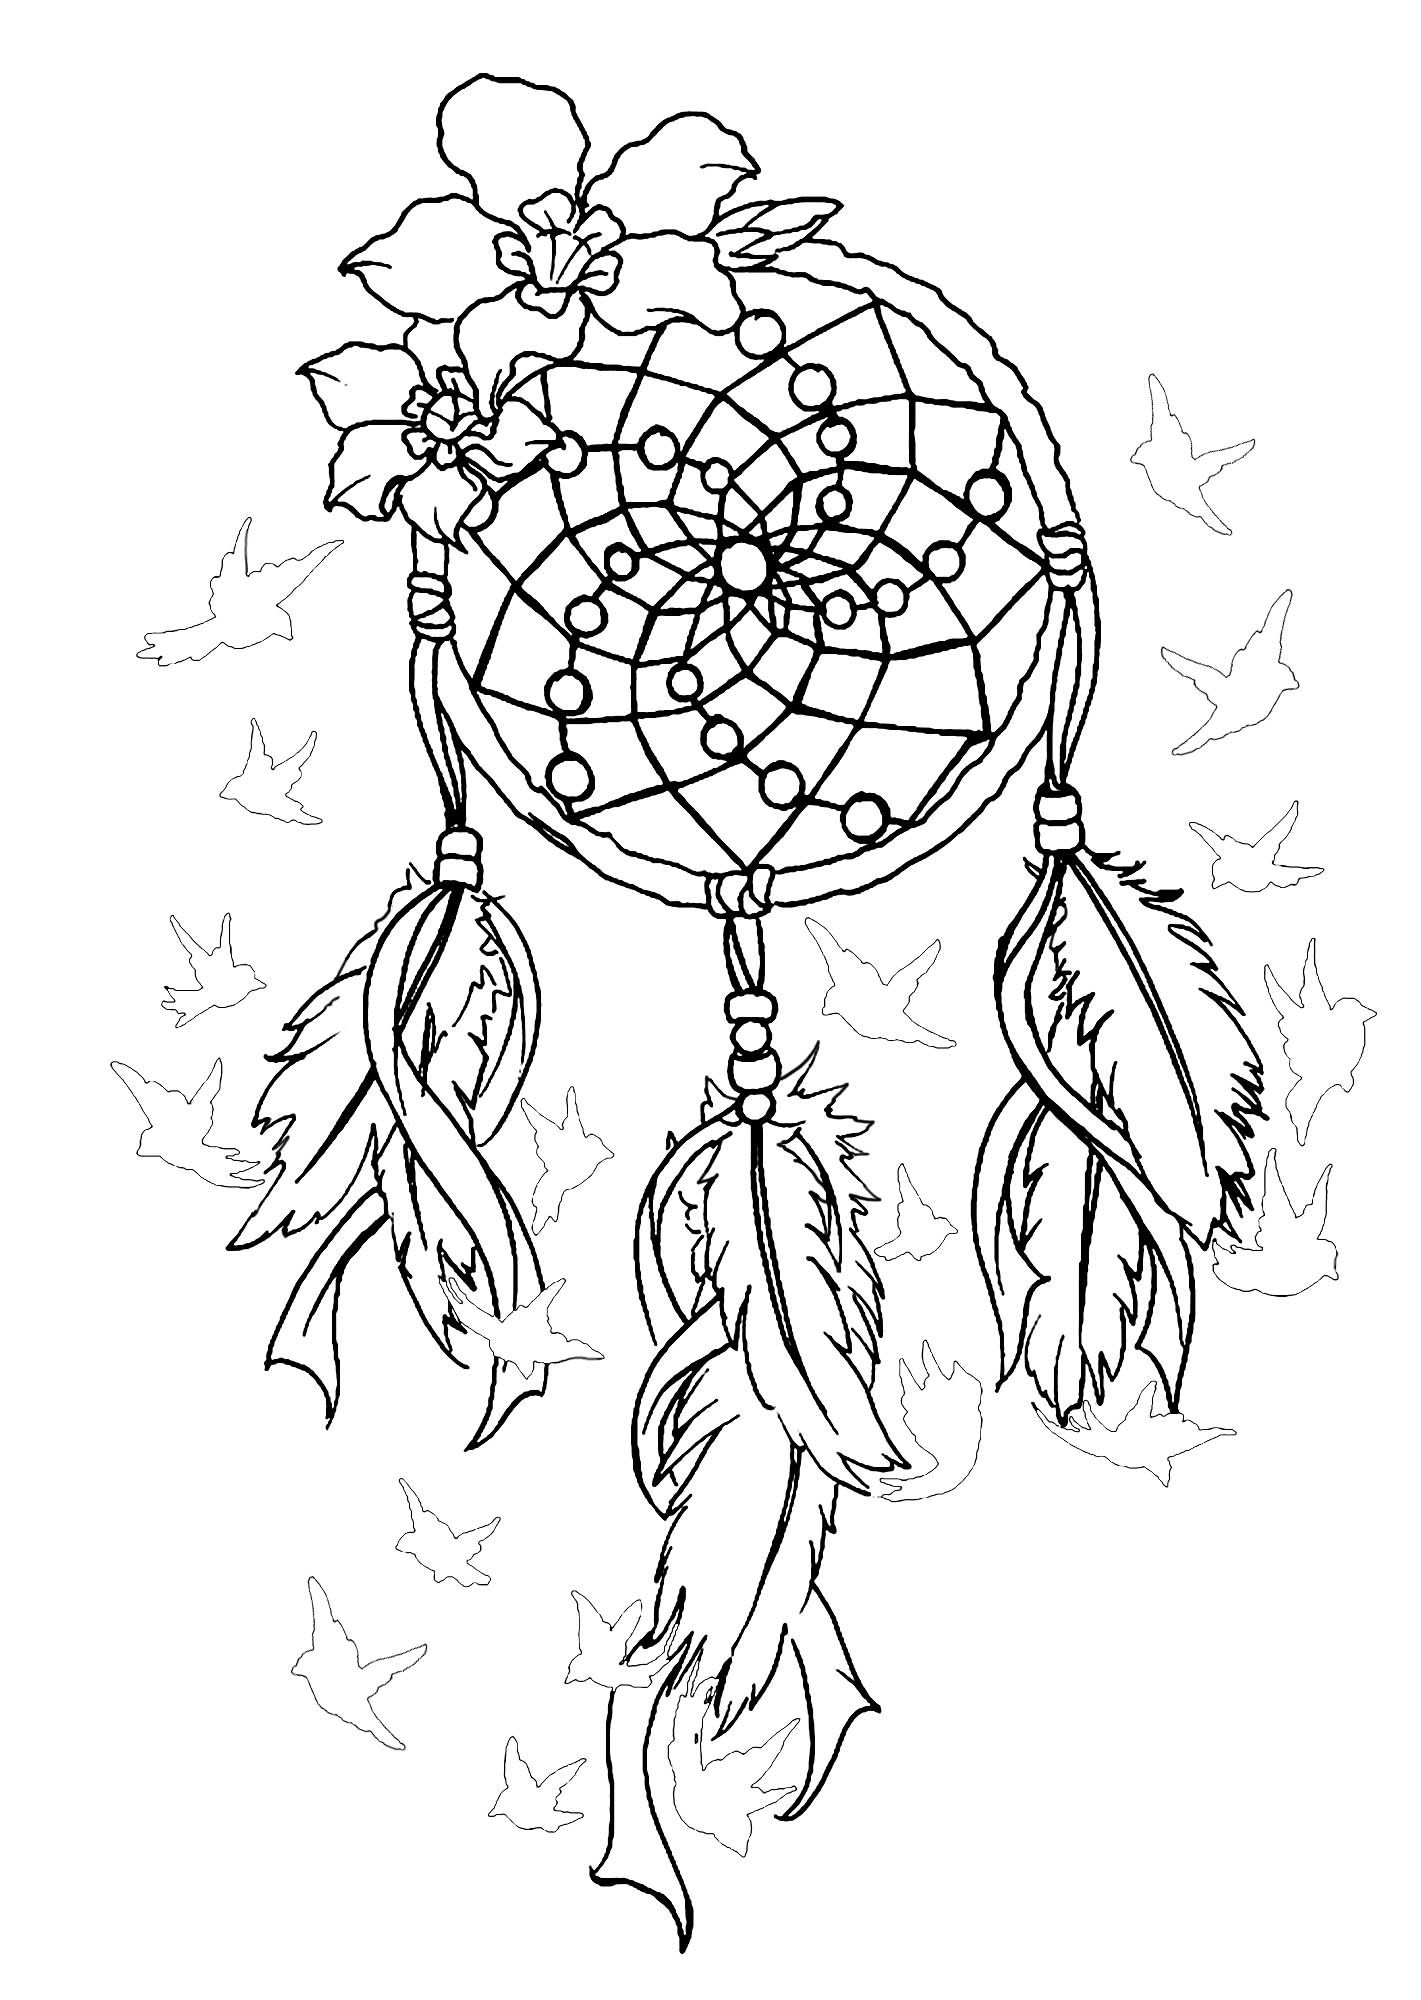 Coloring page of a magnificent dreamcatcher with birds | From the gallery : Zen & Anti Stress